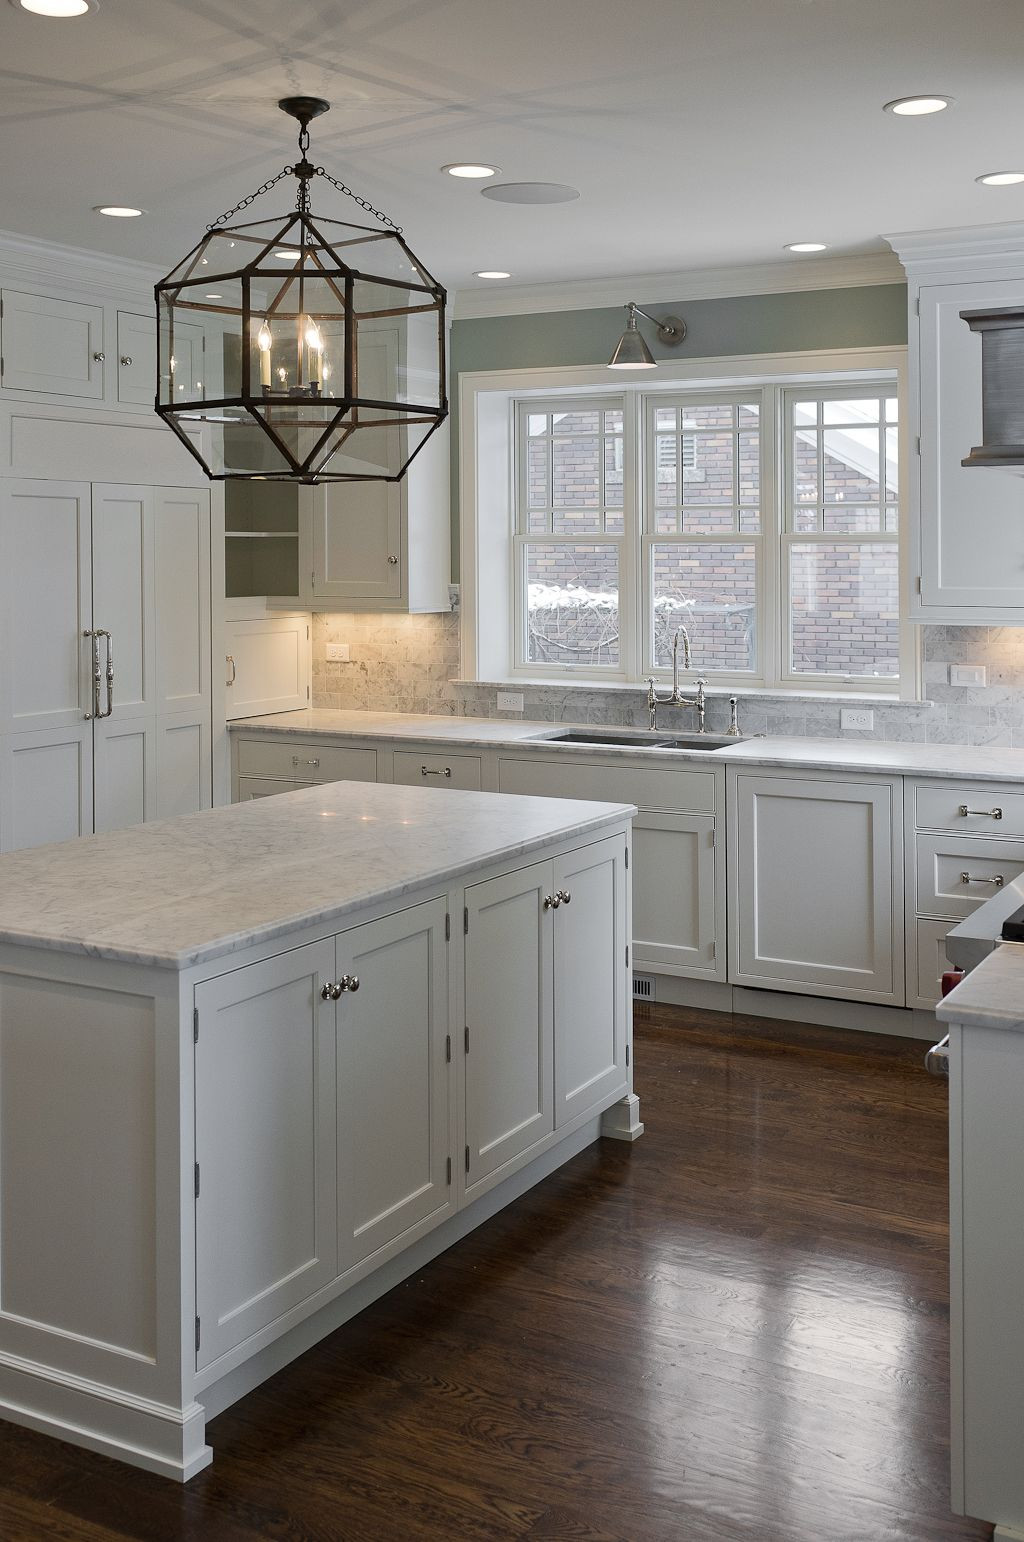 21 attractive Hardwood Flooring Summit Nj 2021 free download hardwood flooring summit nj of 30 spectacular white kitchens with dark wood floors kitchen dining with dark floorswhite cabinets white granite silver knobs and gray paint wall